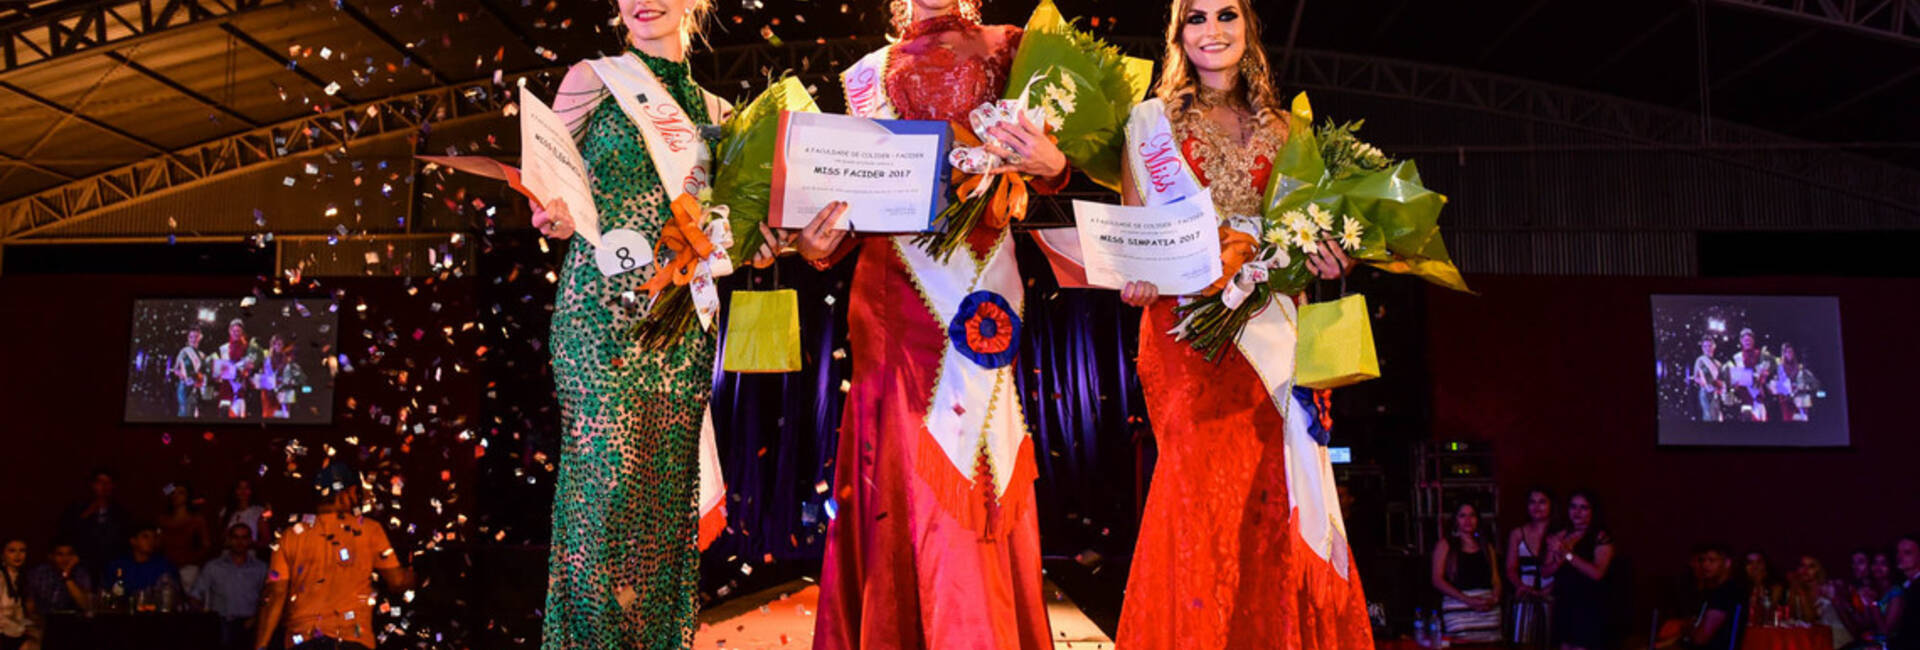 Eventos de Miss Facider 2017